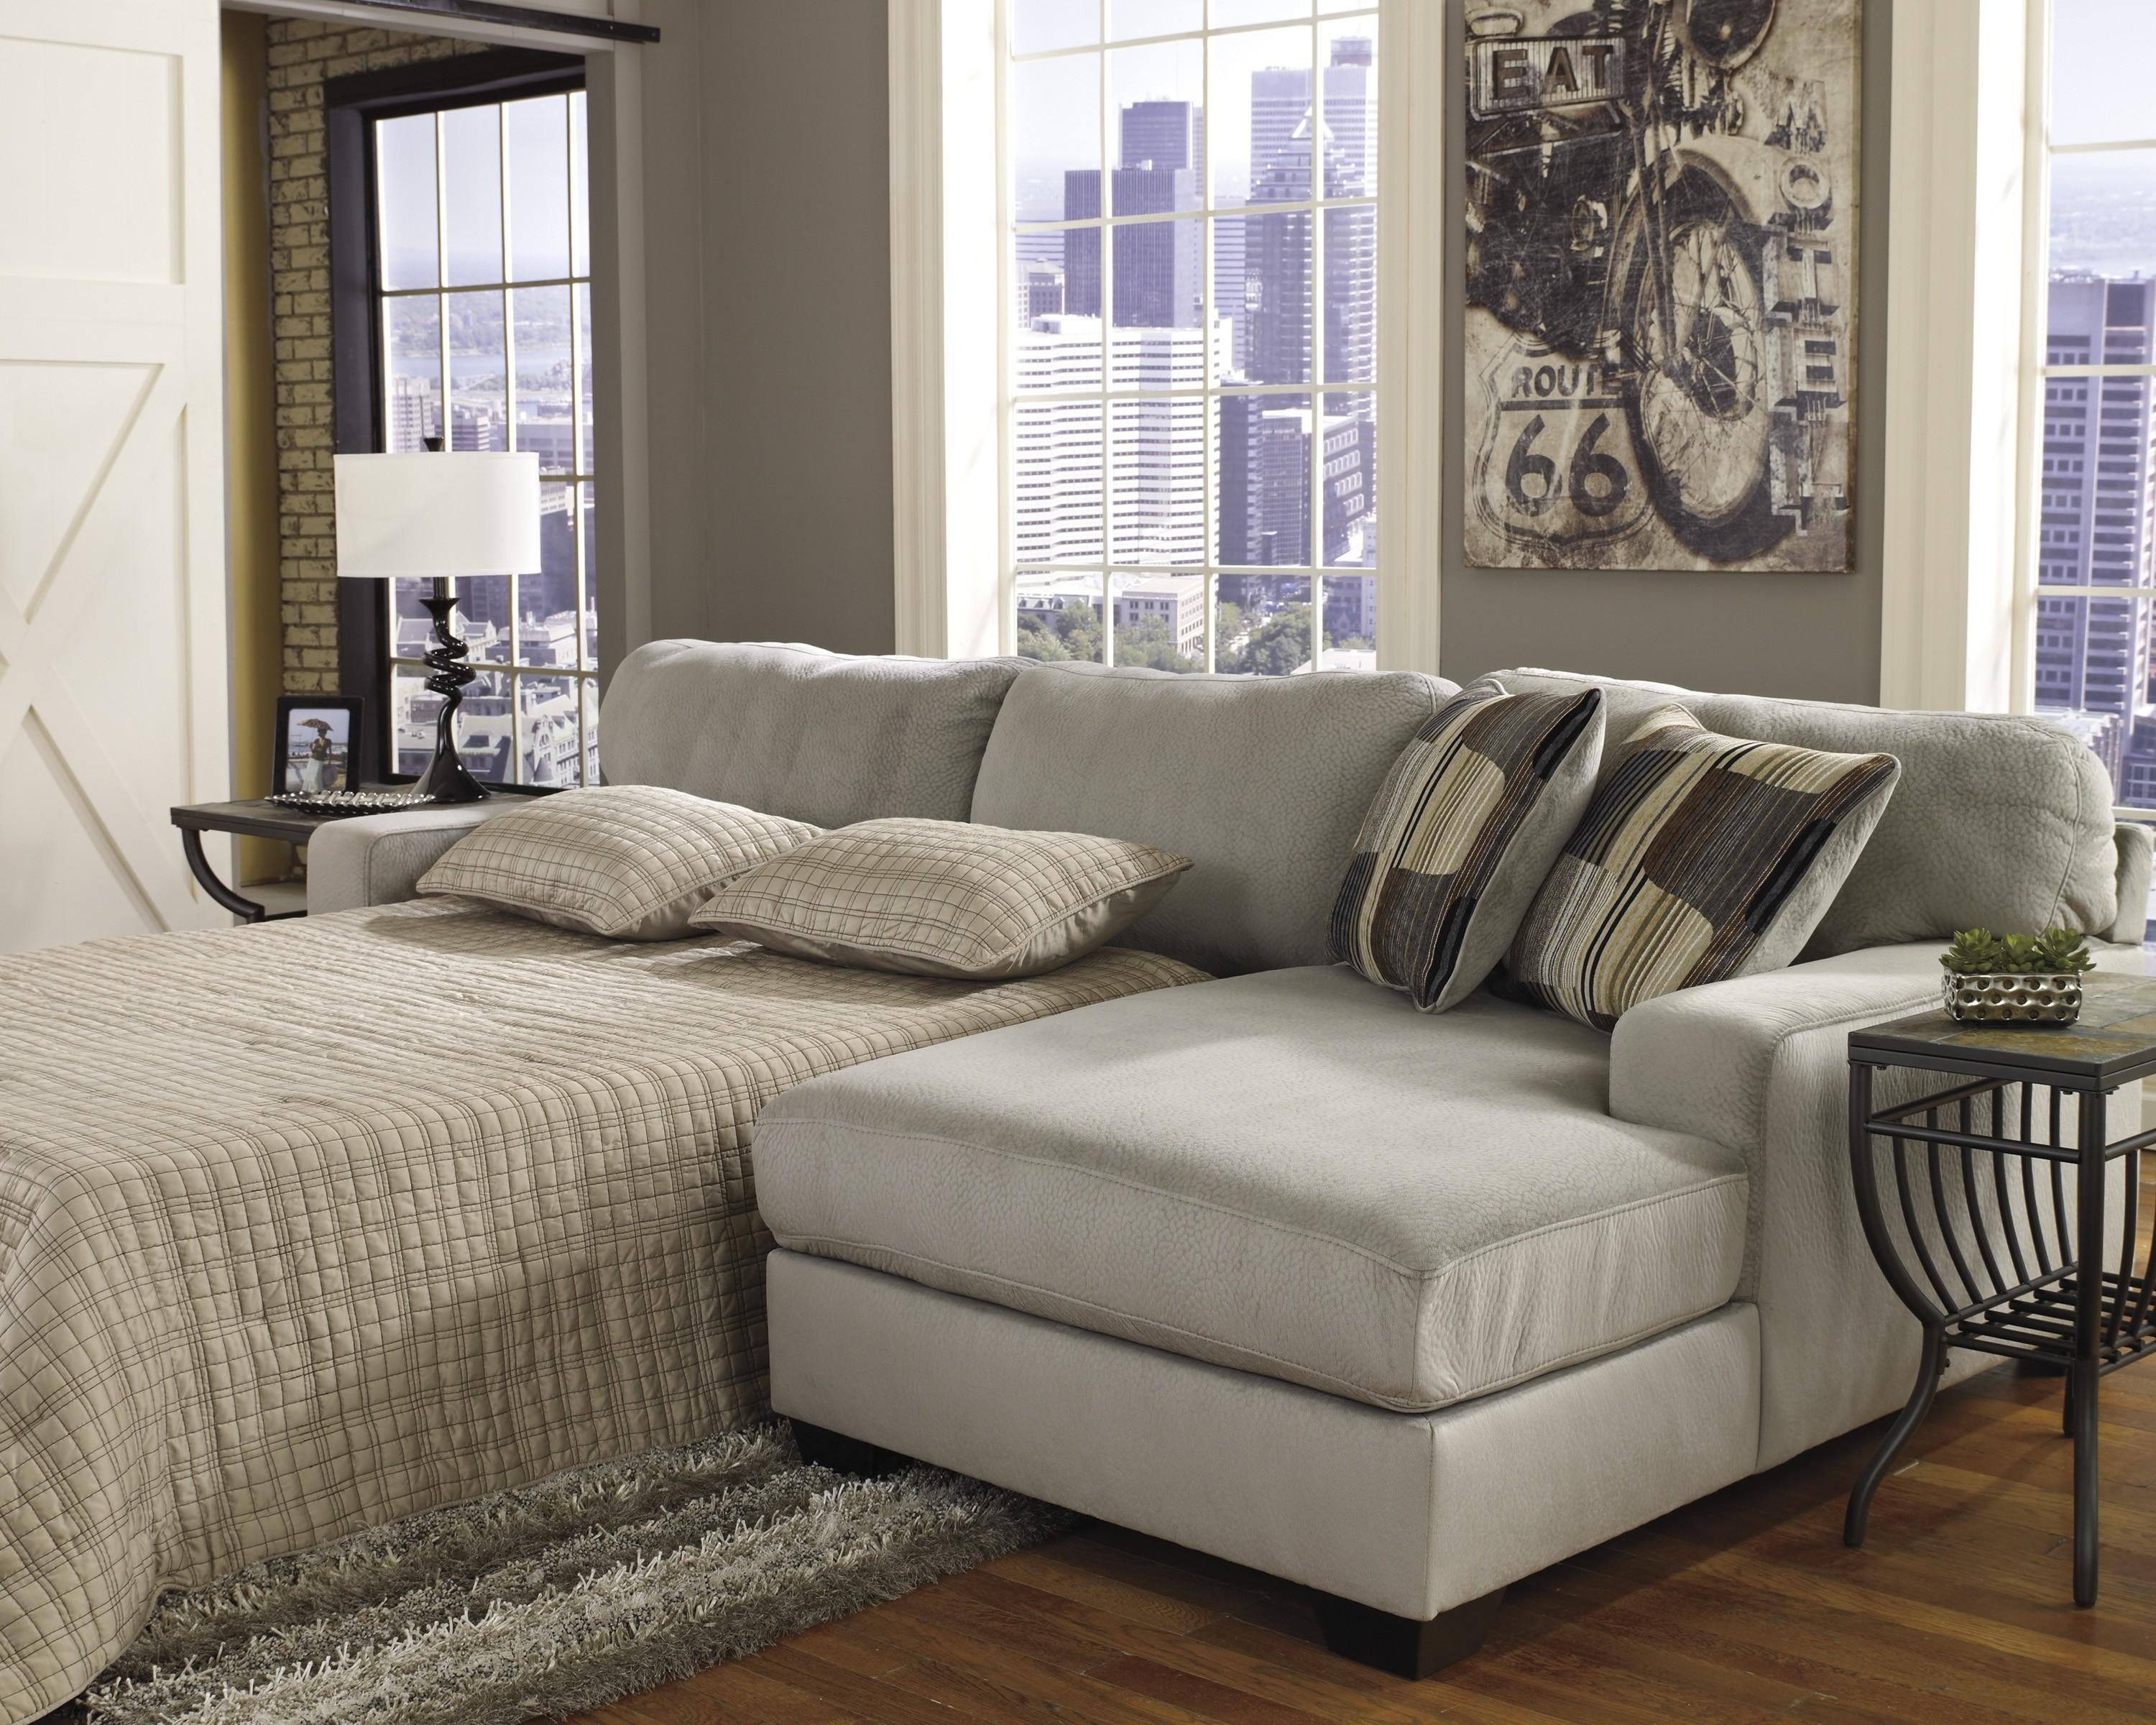 Sleeper Sectional Sofa With Chaise | Tehranmix Decoration For Sectional Sleeper Sofas With Chaise (Image 16 of 20)